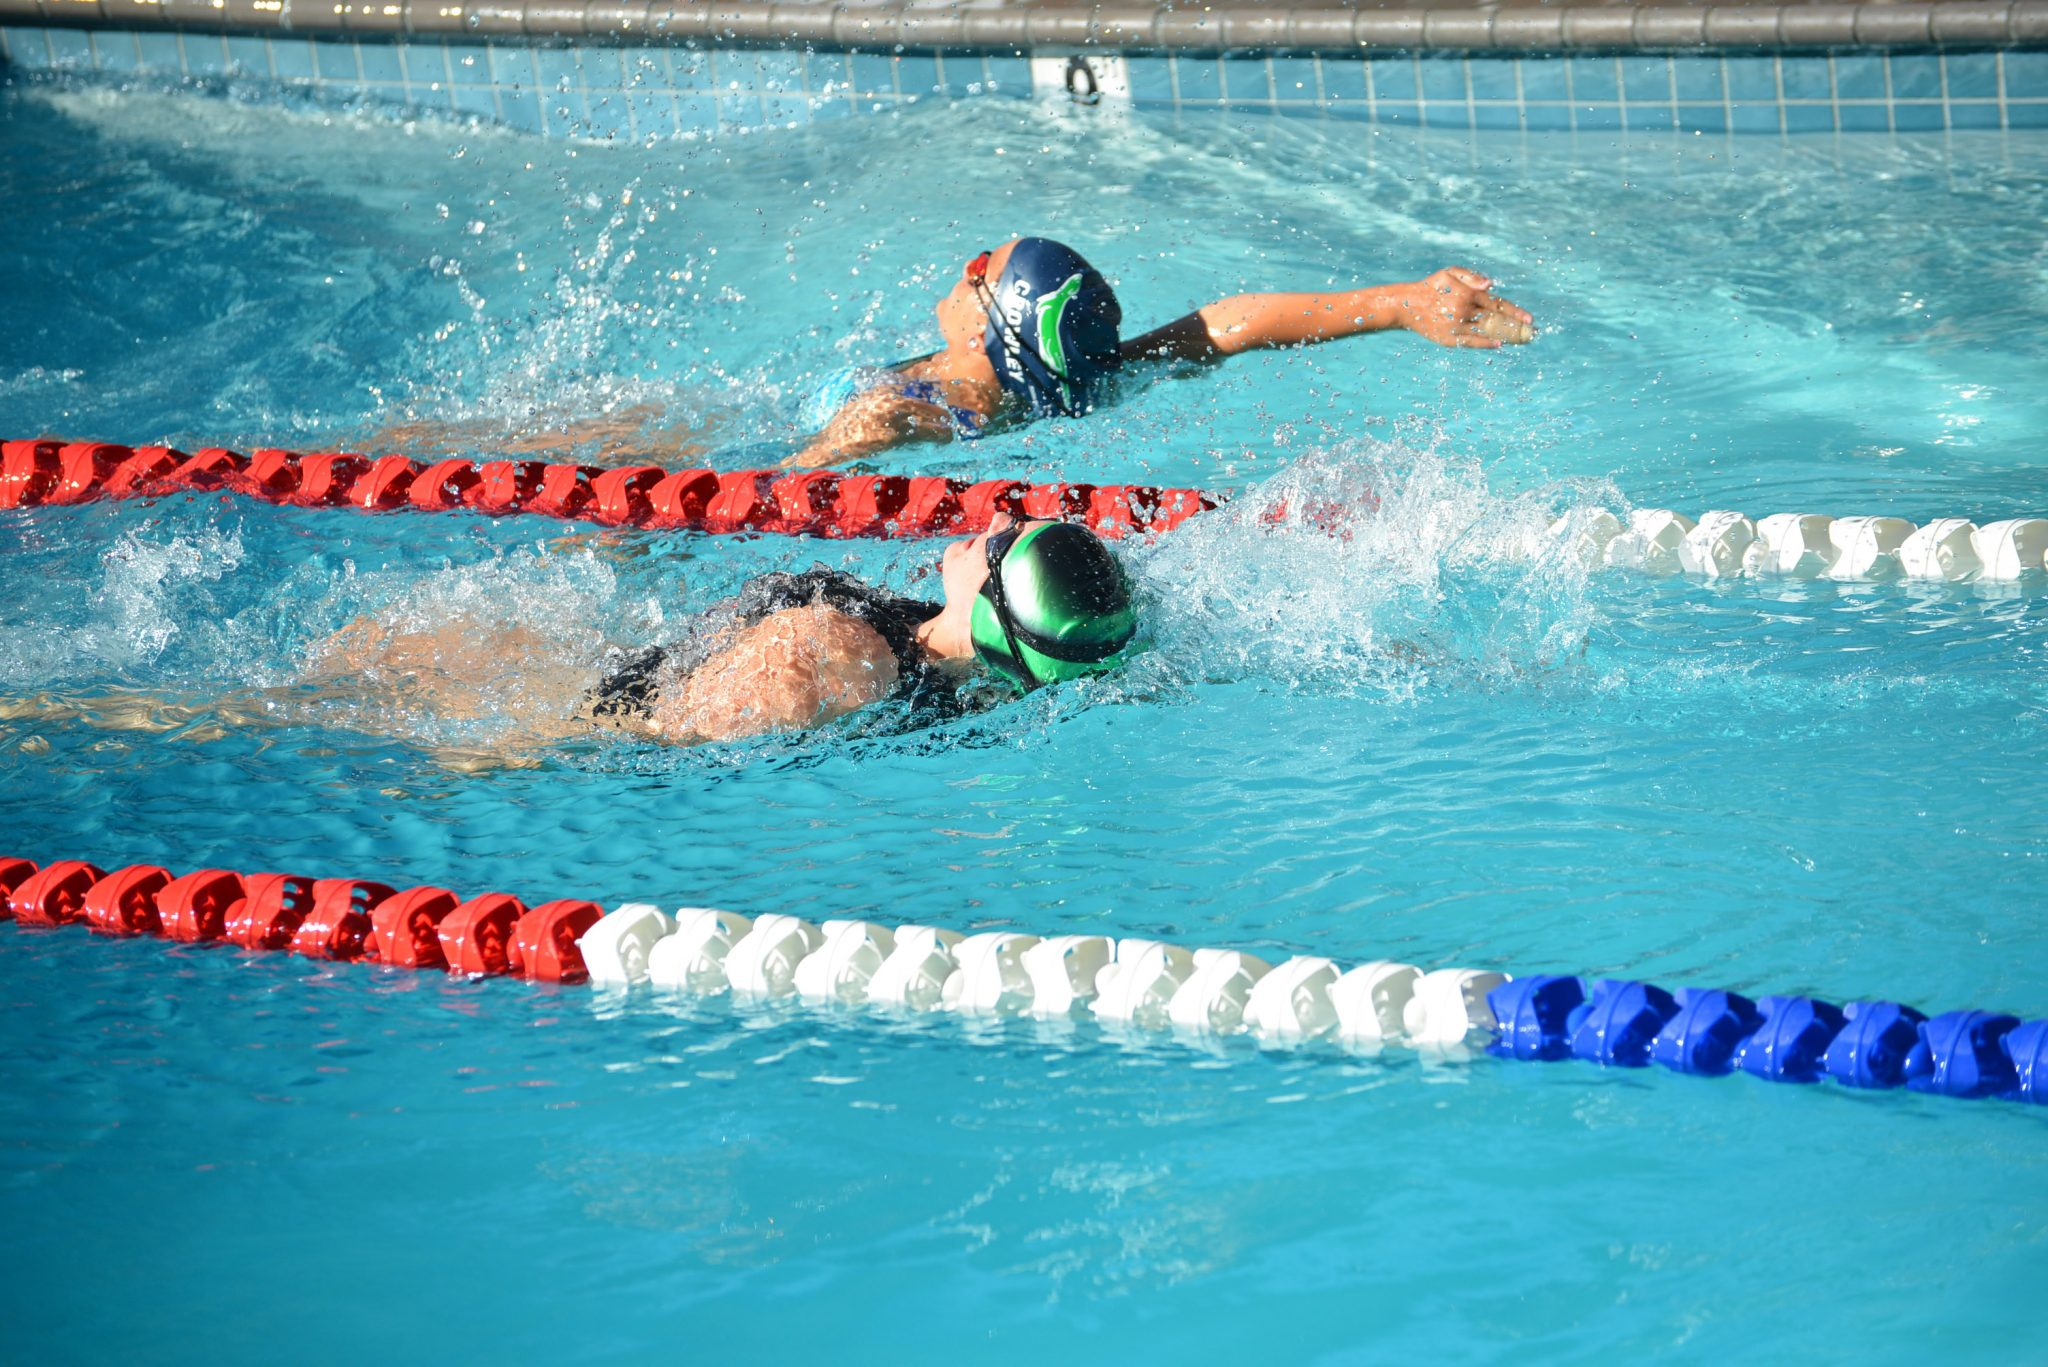 Sydney Leonard from Forest Hills and Rowan Crowley from MCST compete neck and neck in the water. (COURTESY / On File)